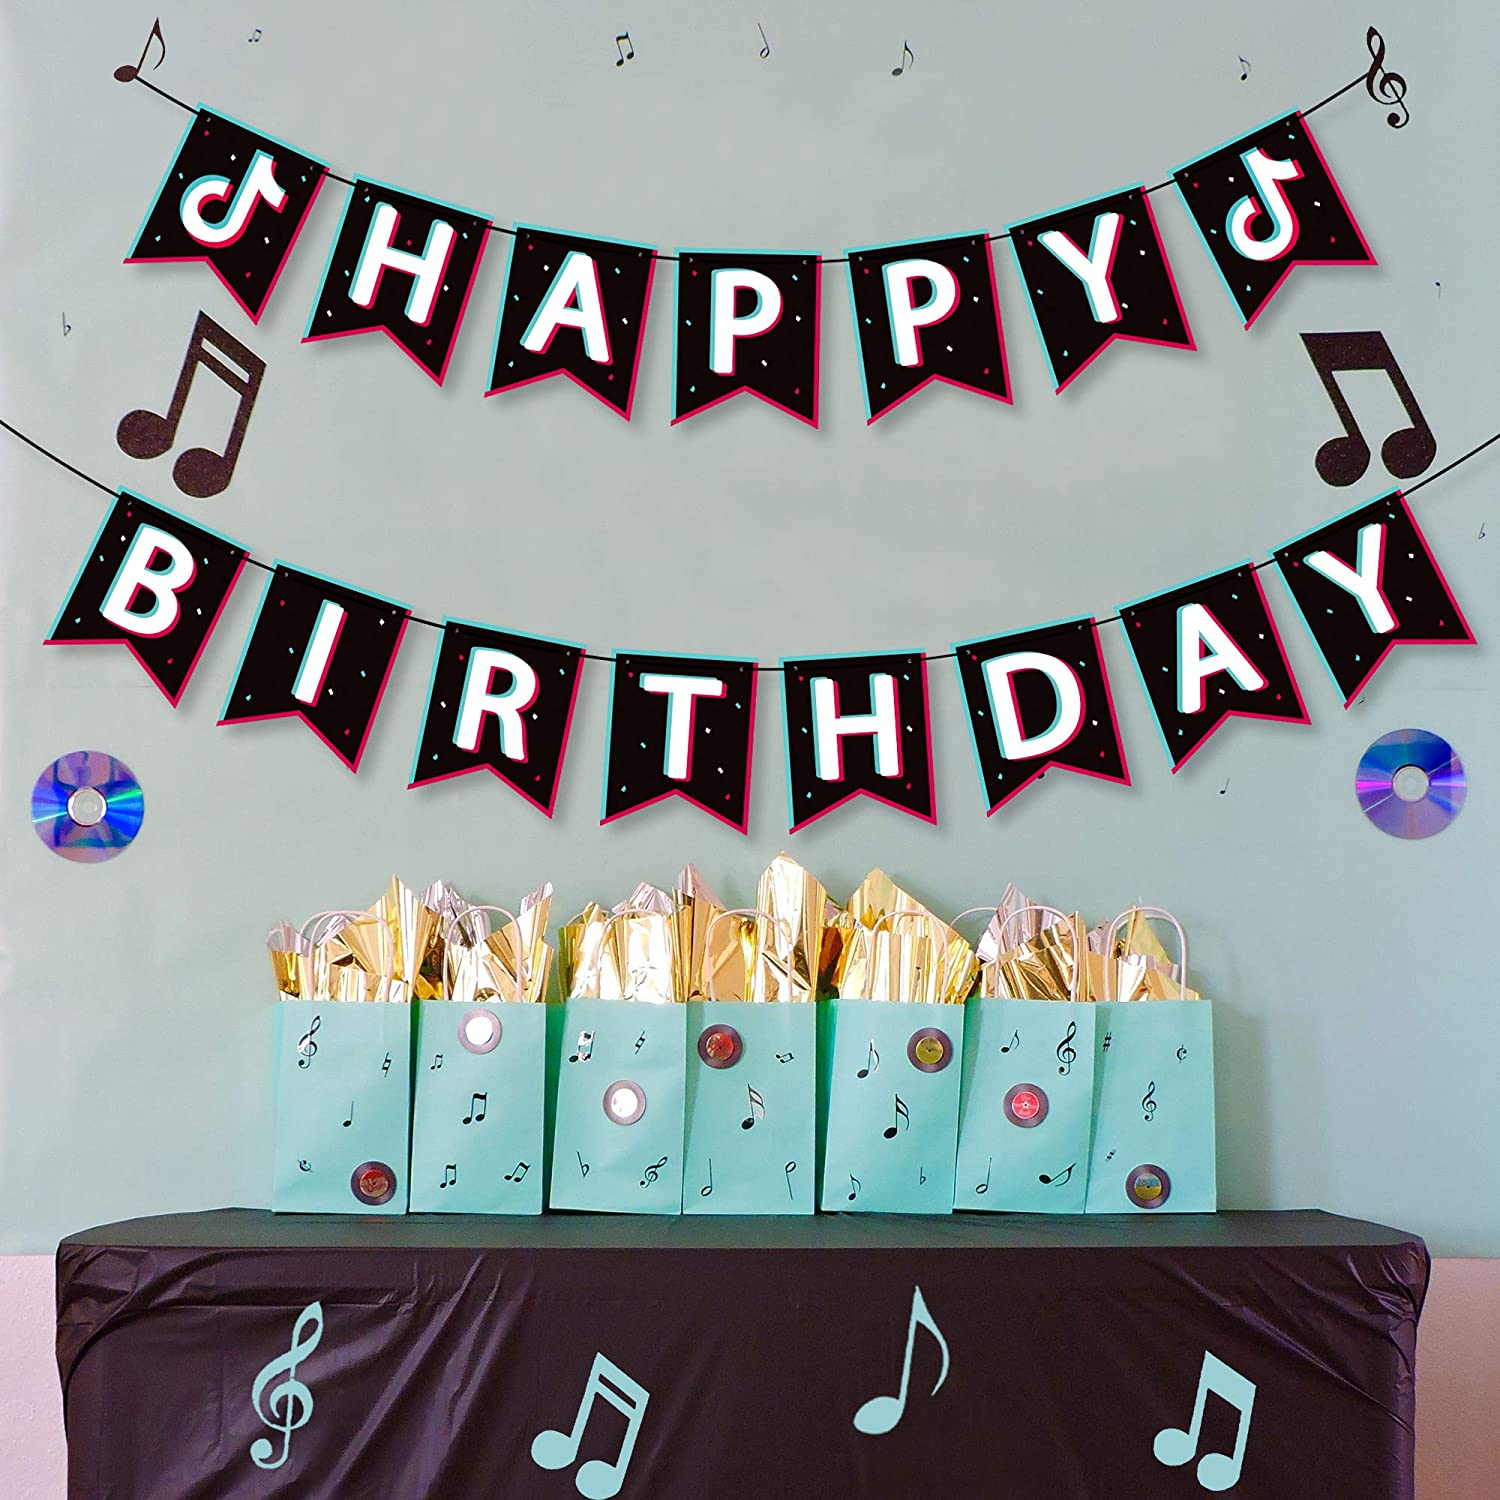 Music Note Sign Flags Decor Themed Party Decoration Shot Video Fans for Musical Party Sharing Celebration Birthday Party Supplies TIK TOK Happy Birthday Printing Banner